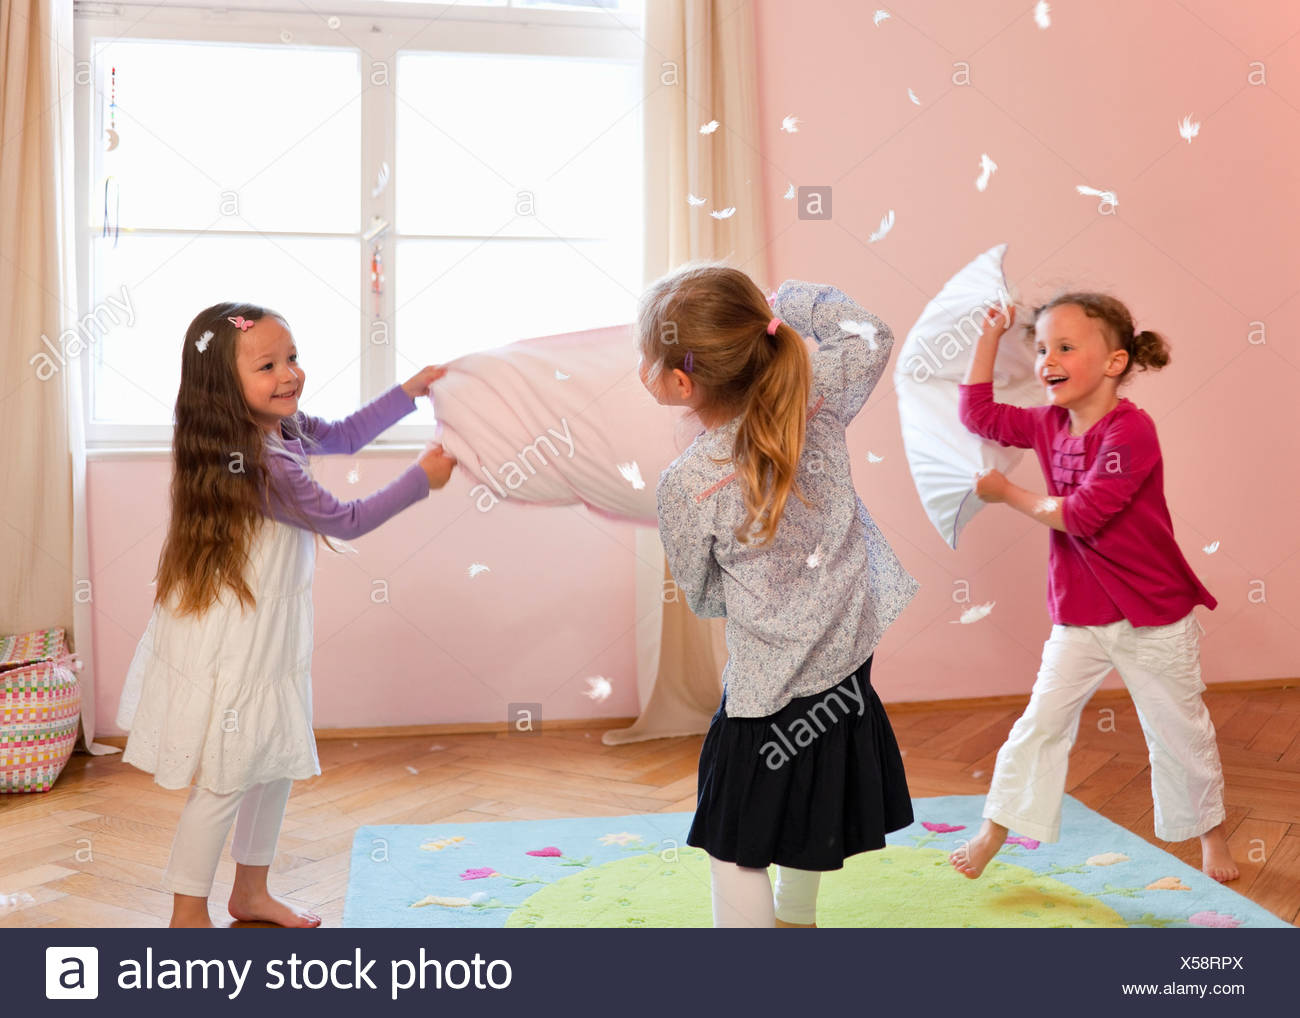 Girls having a pillow fight Stock Photo